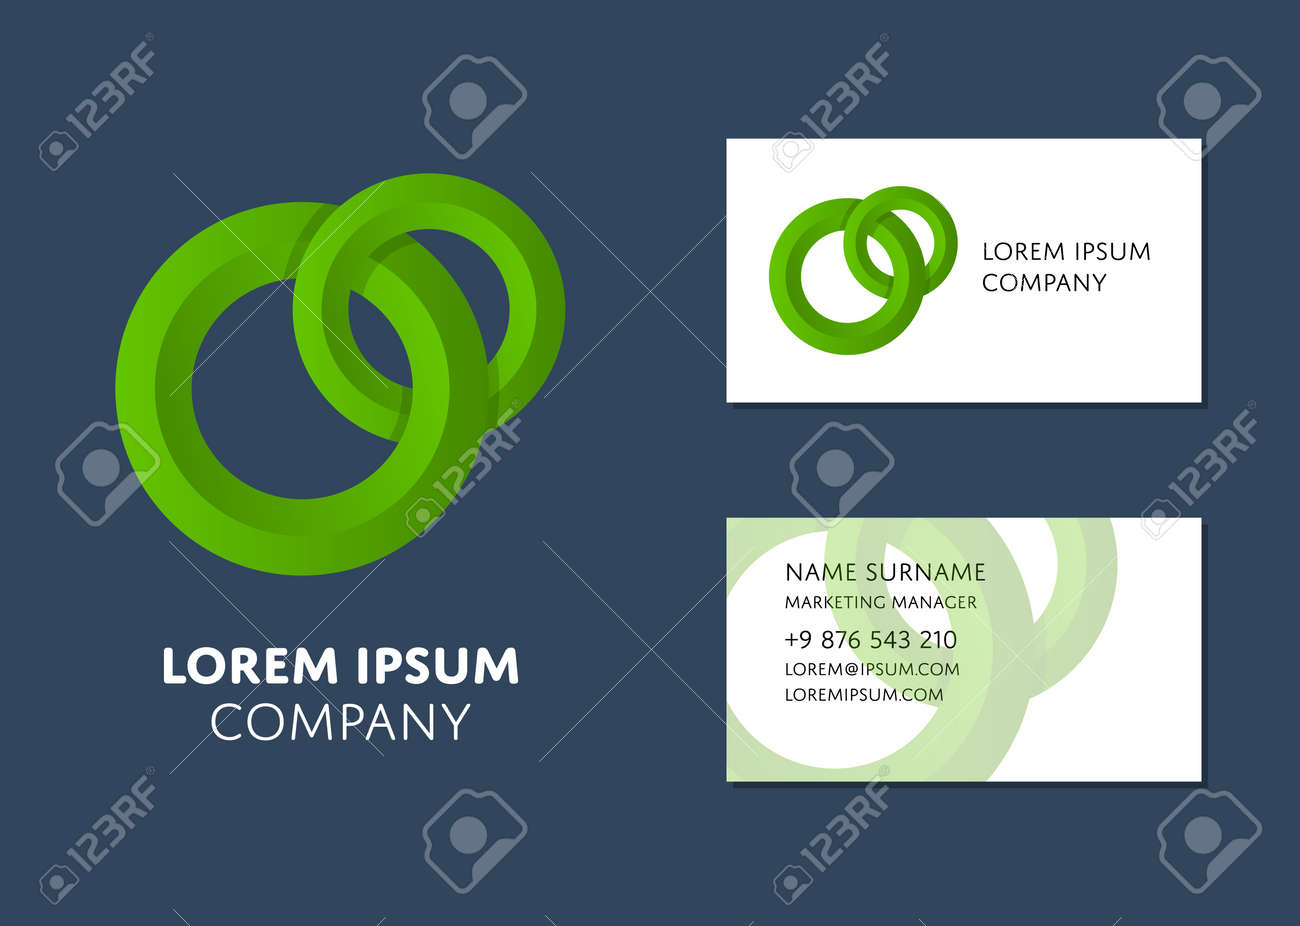 Creative business card template with green circle logo name creative business card template with green circle logo name work position phone flashek Images